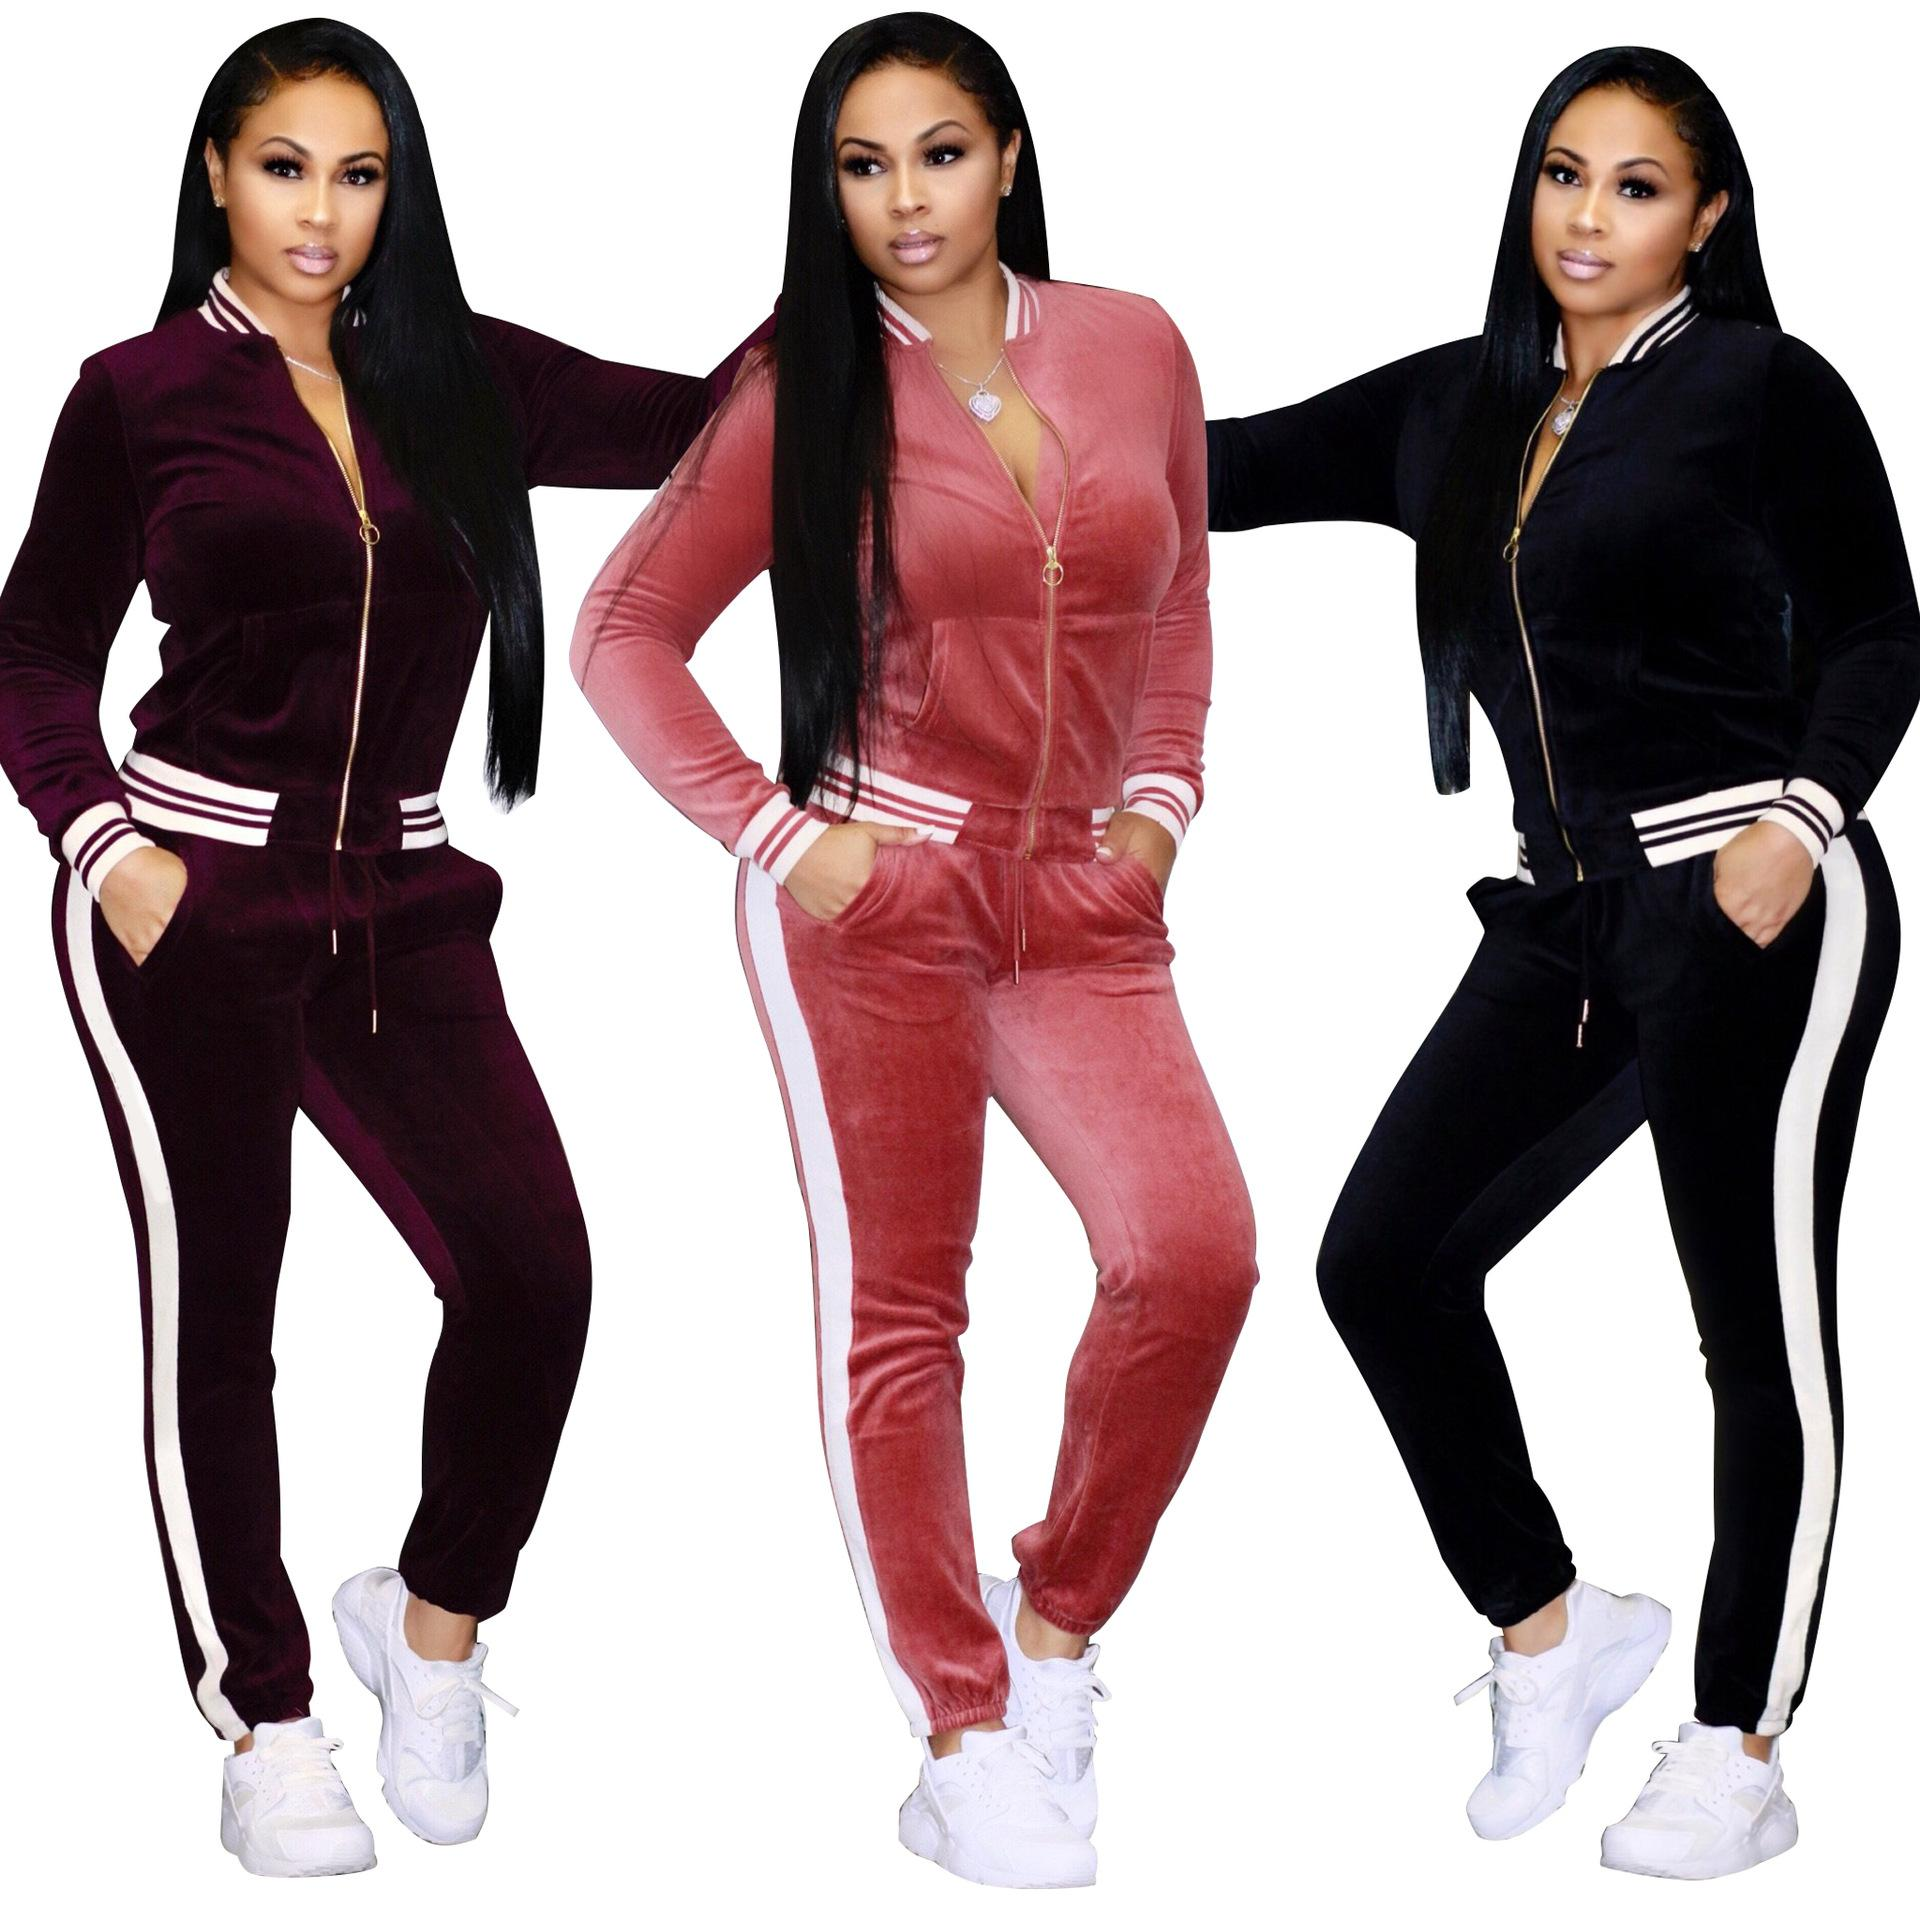 8cbb6533a16 2019 Plus Size Velour Tracksuits Women Warm Pocket Casual Side Ribbons  Zipper Long Sleeve Pencil Pant Outfits Sports Two Piece Sets From  Hengytrade